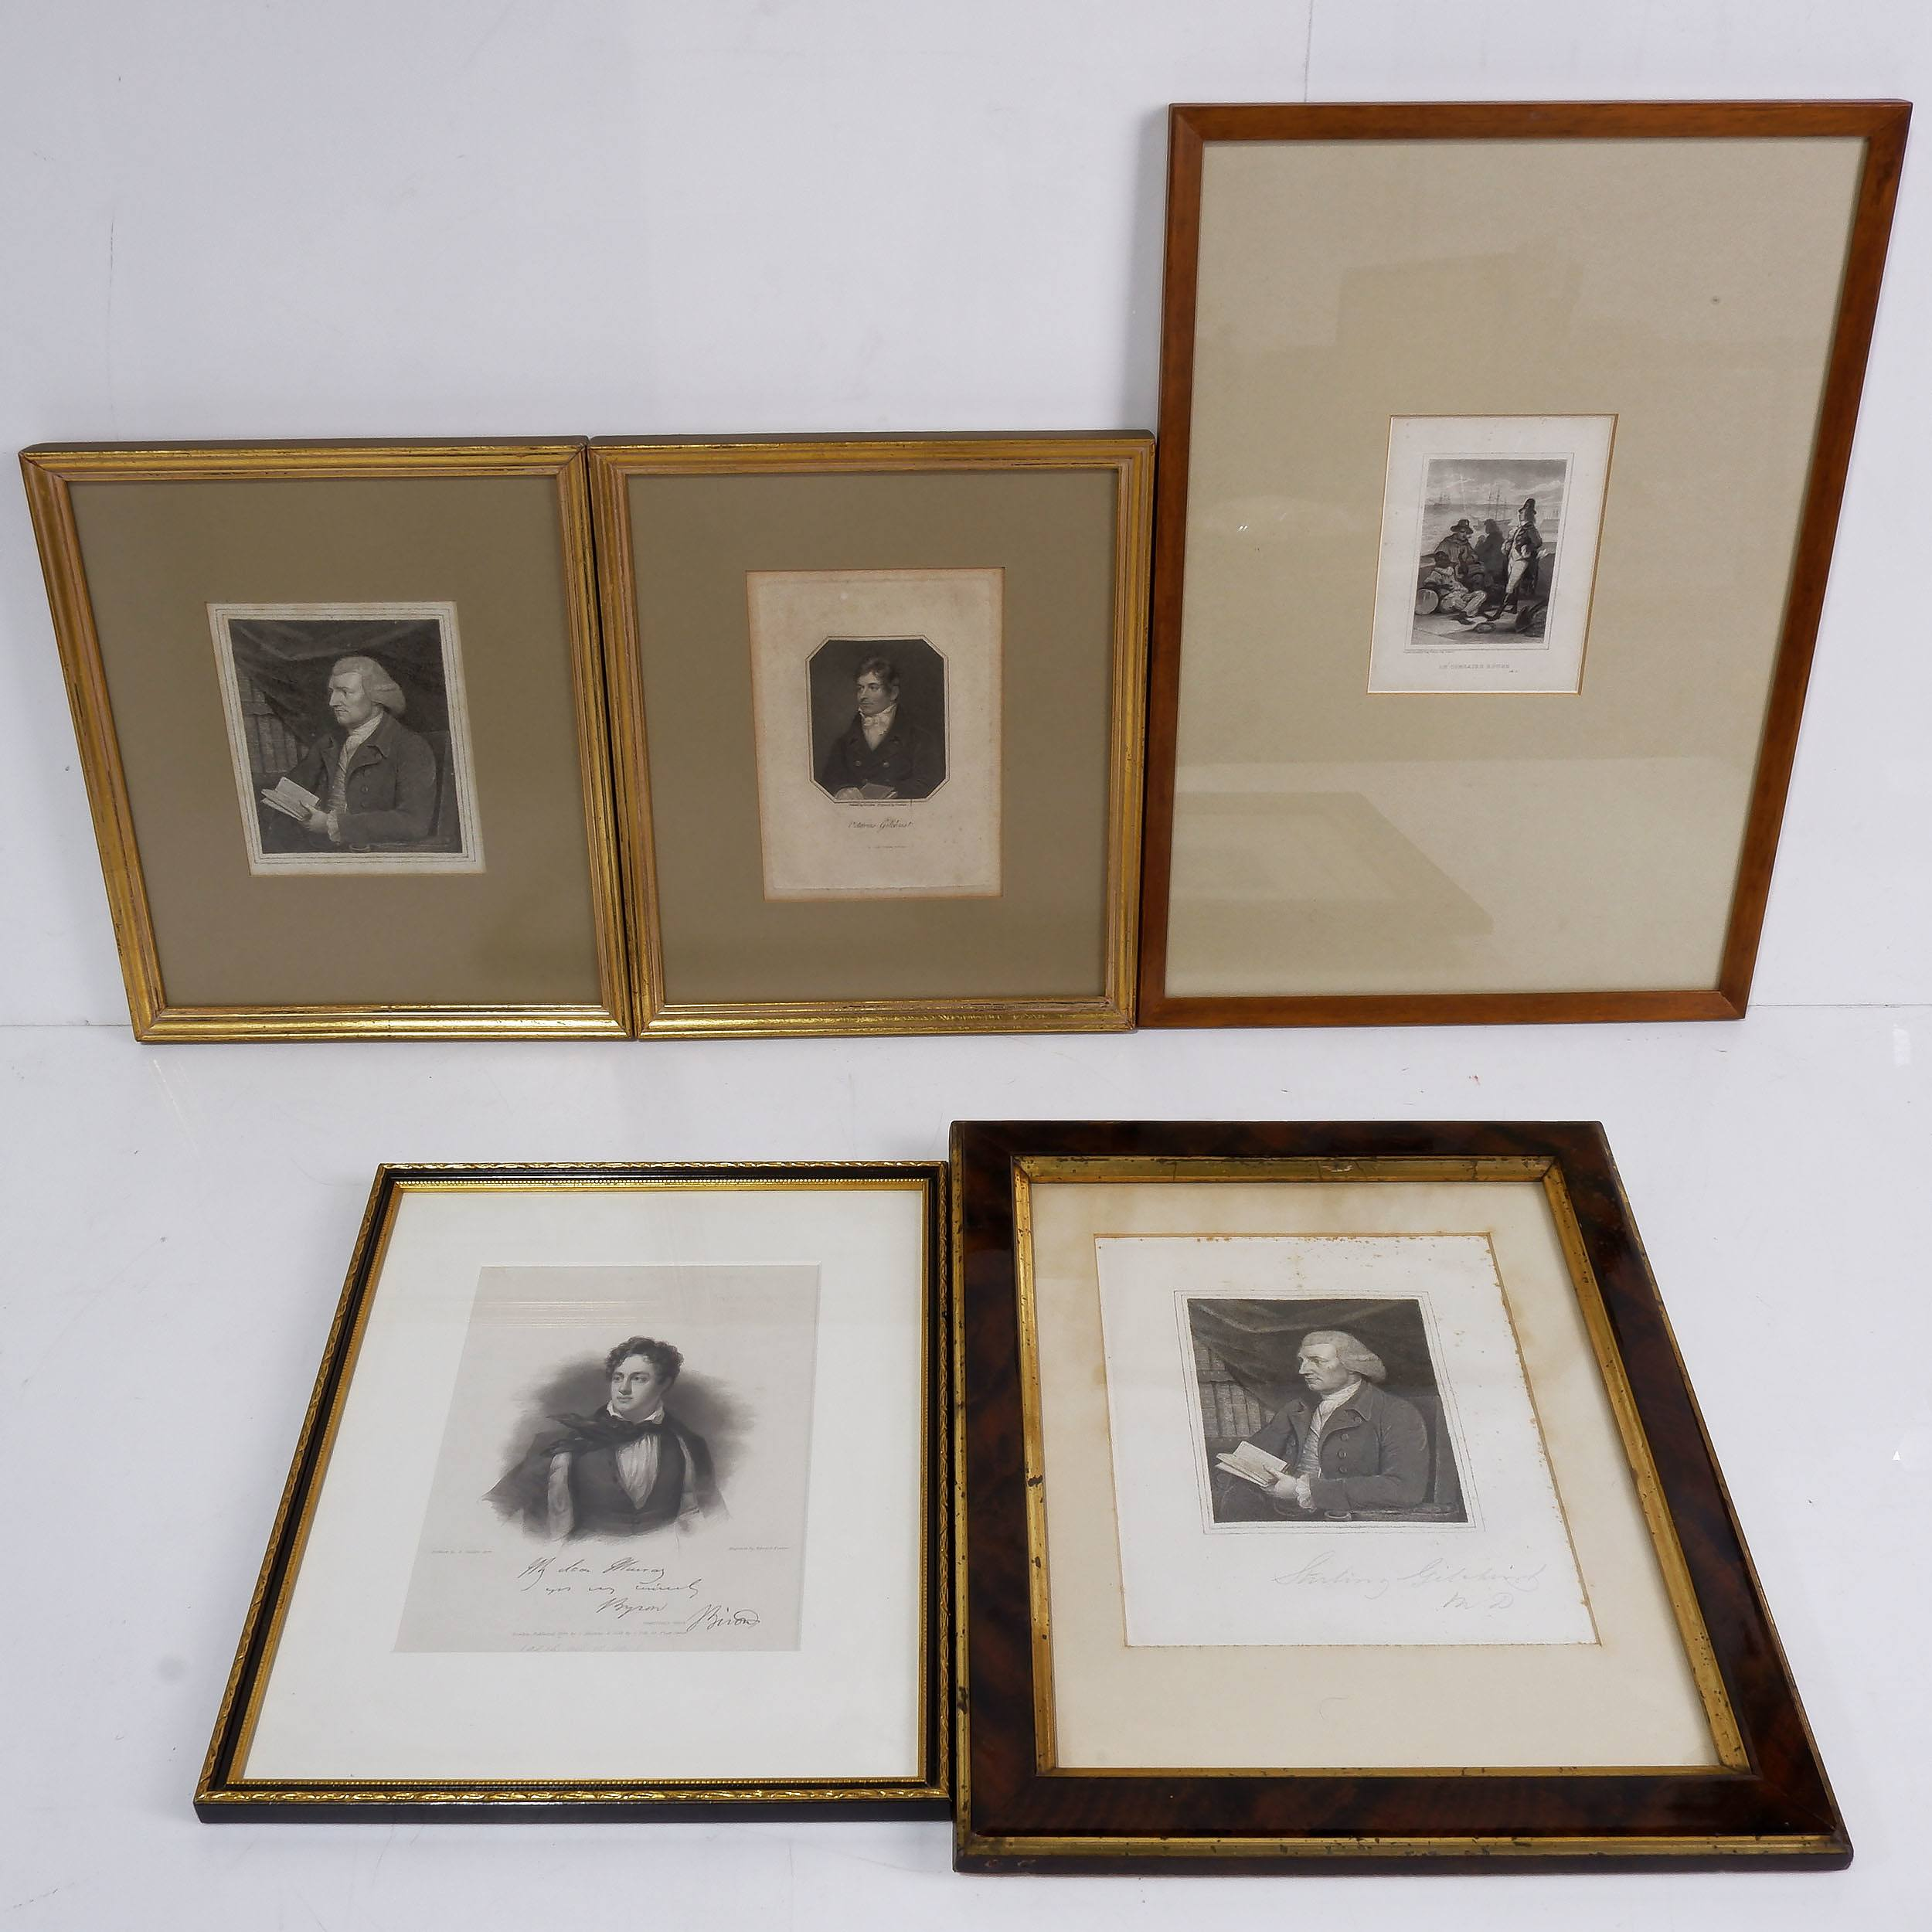 'Group of Framed Antiquarian Portrait Engravings'